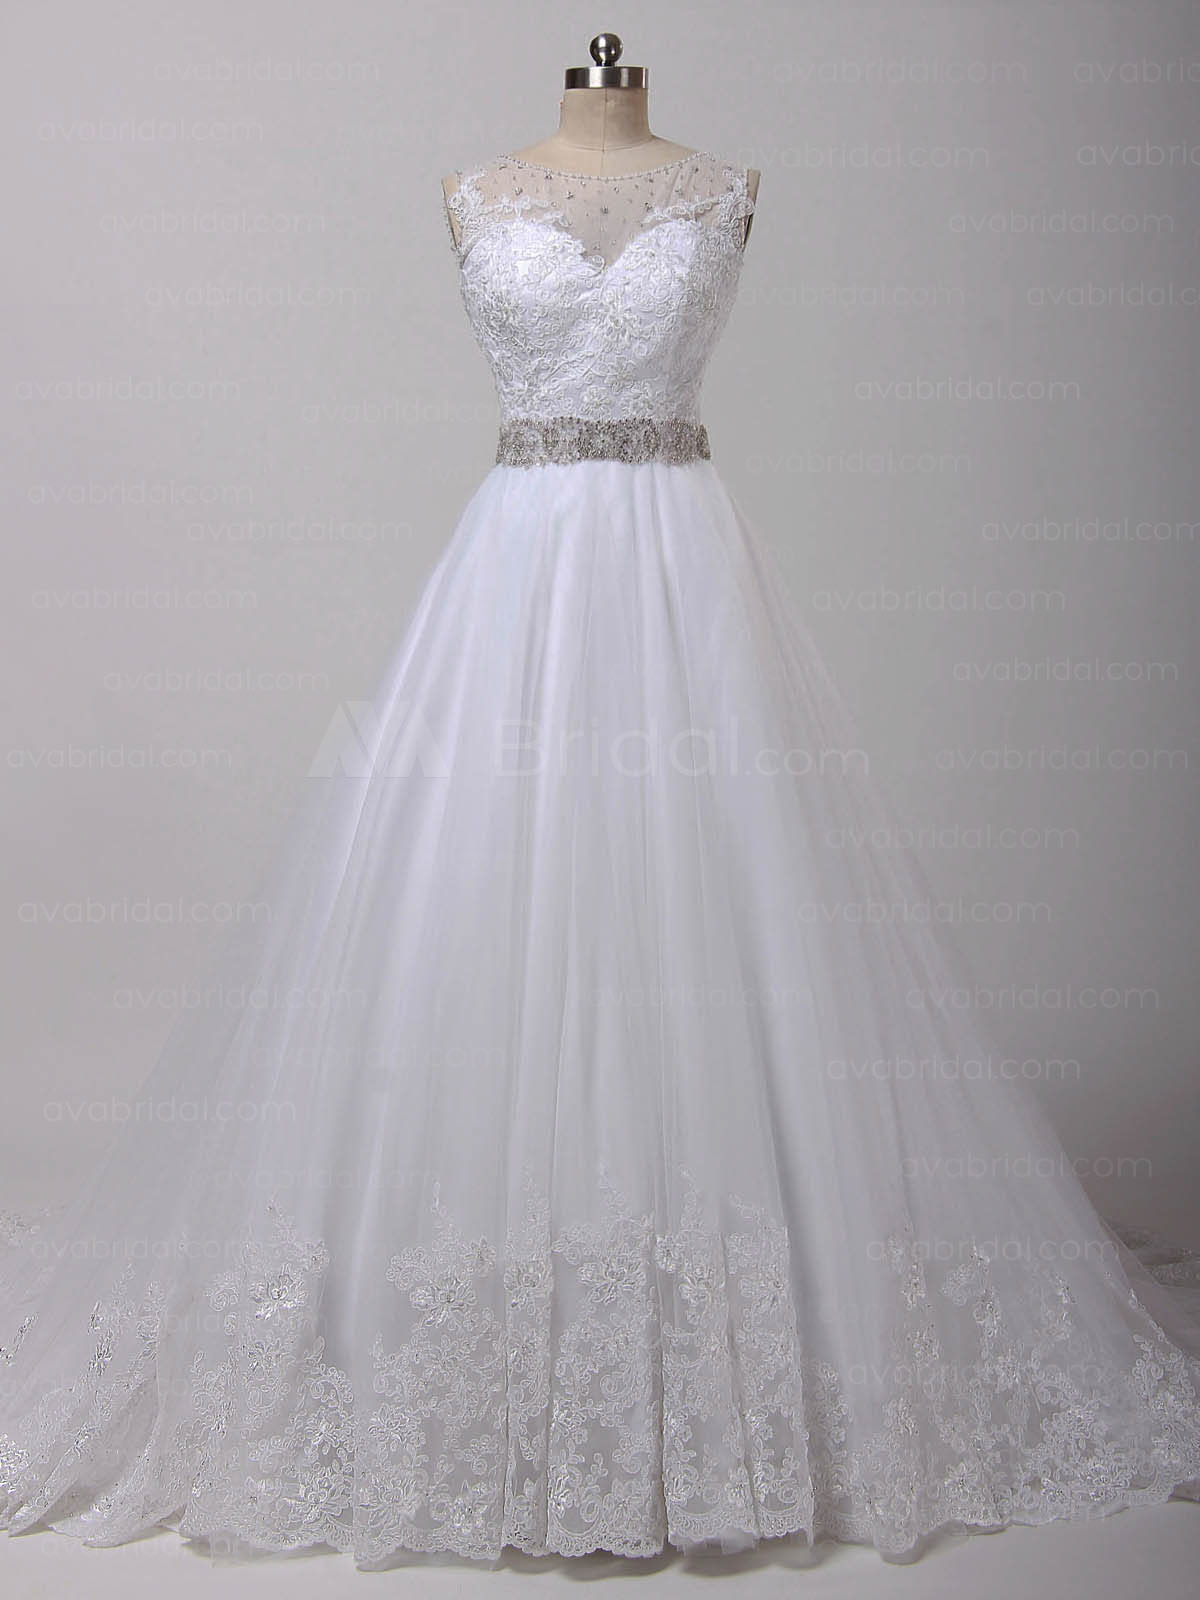 Gorgeous Vintage Wedding Dress – Abriana - Front